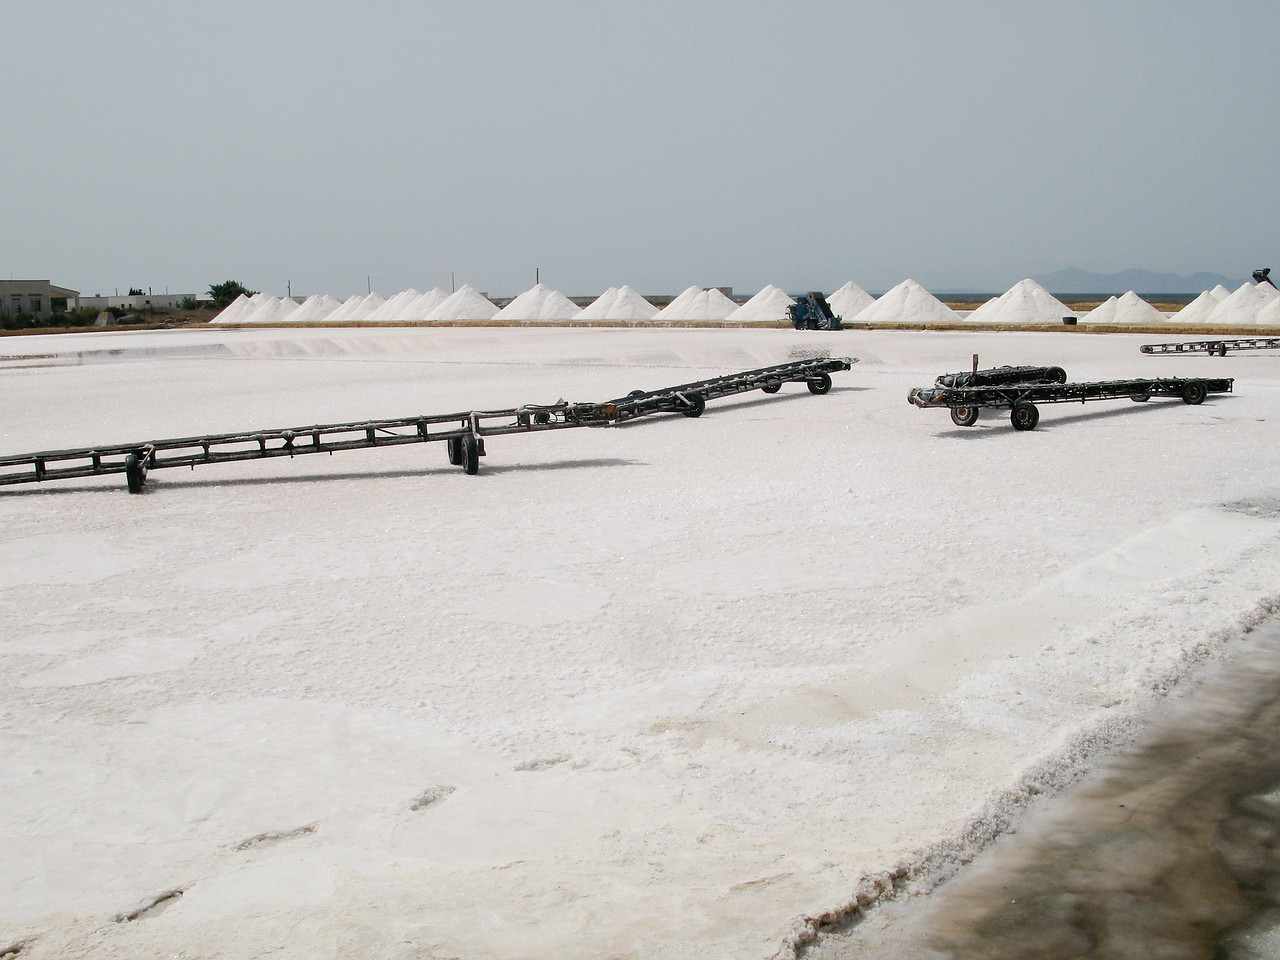 Salt being harvested